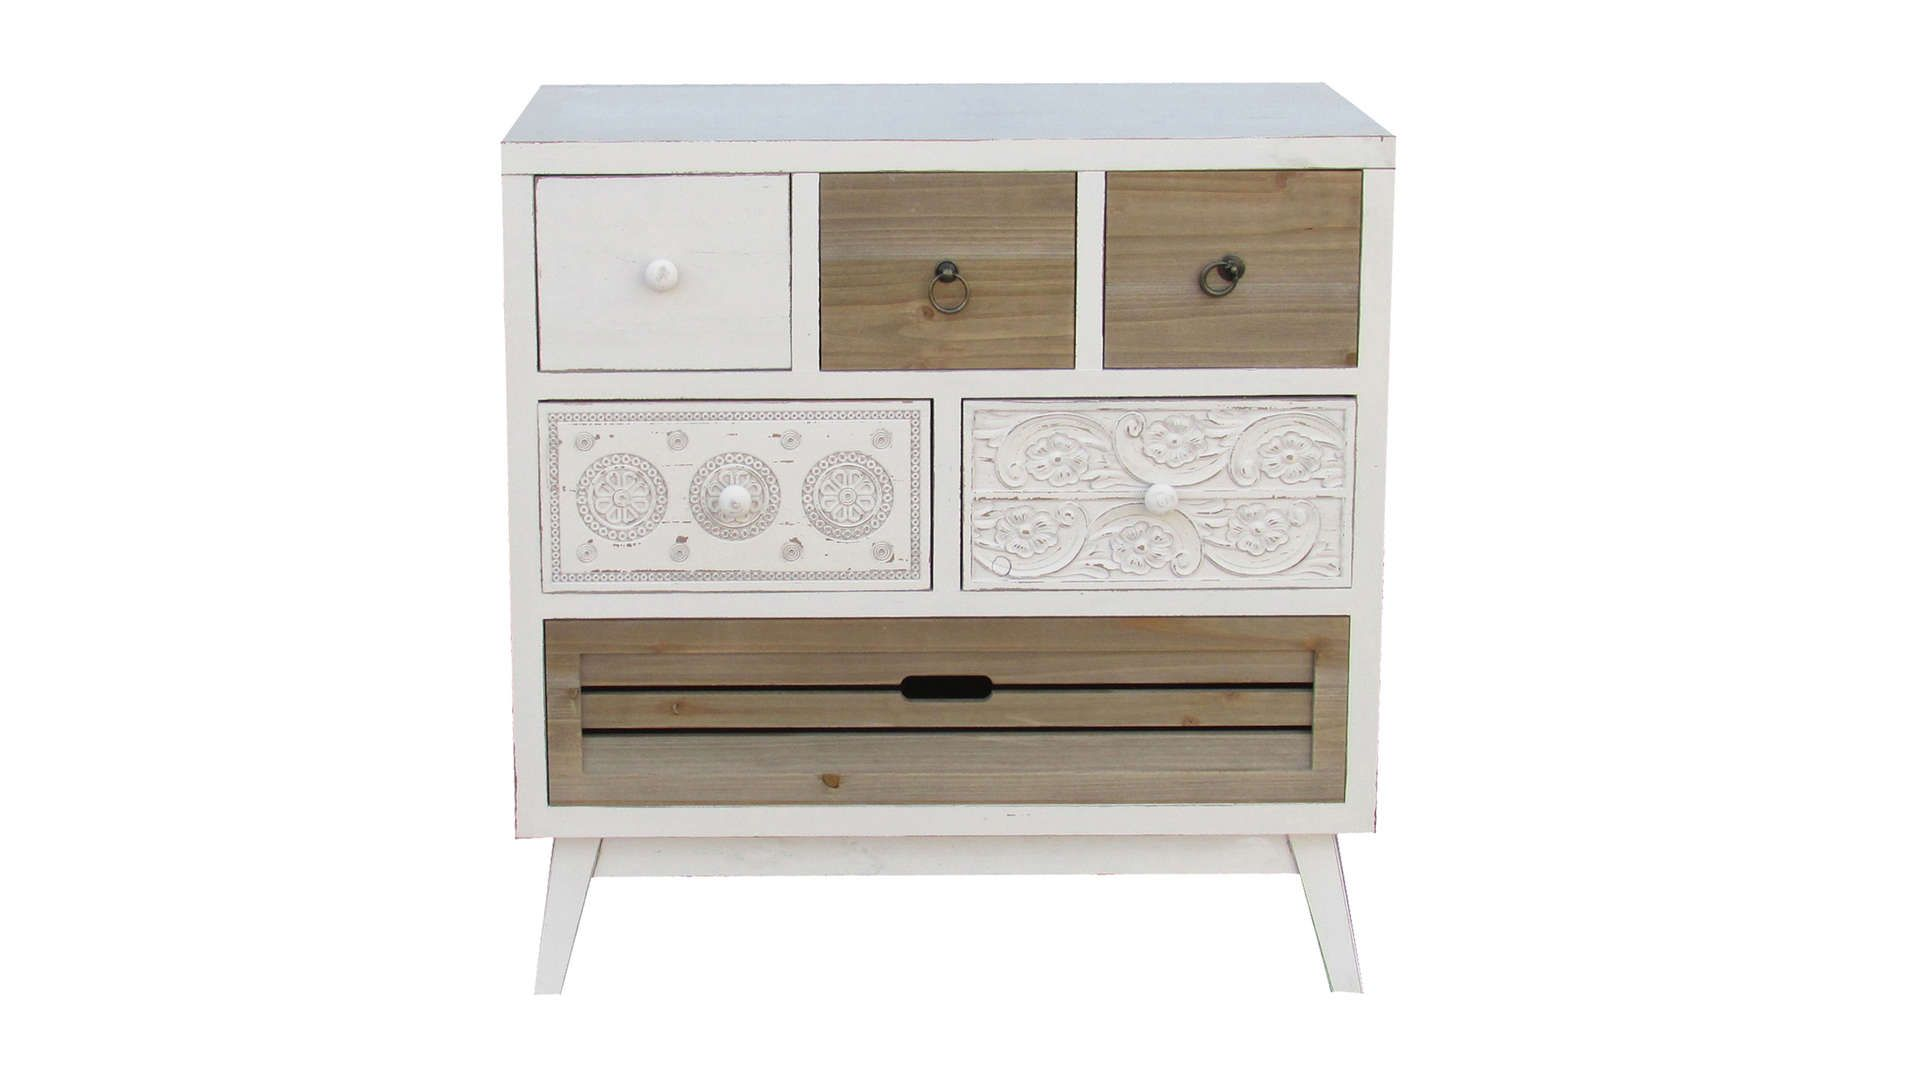 Commode 5 Tiroirs 1 Abattant Santy Coloris Bois Blanchi Commode 5 Tiroirs